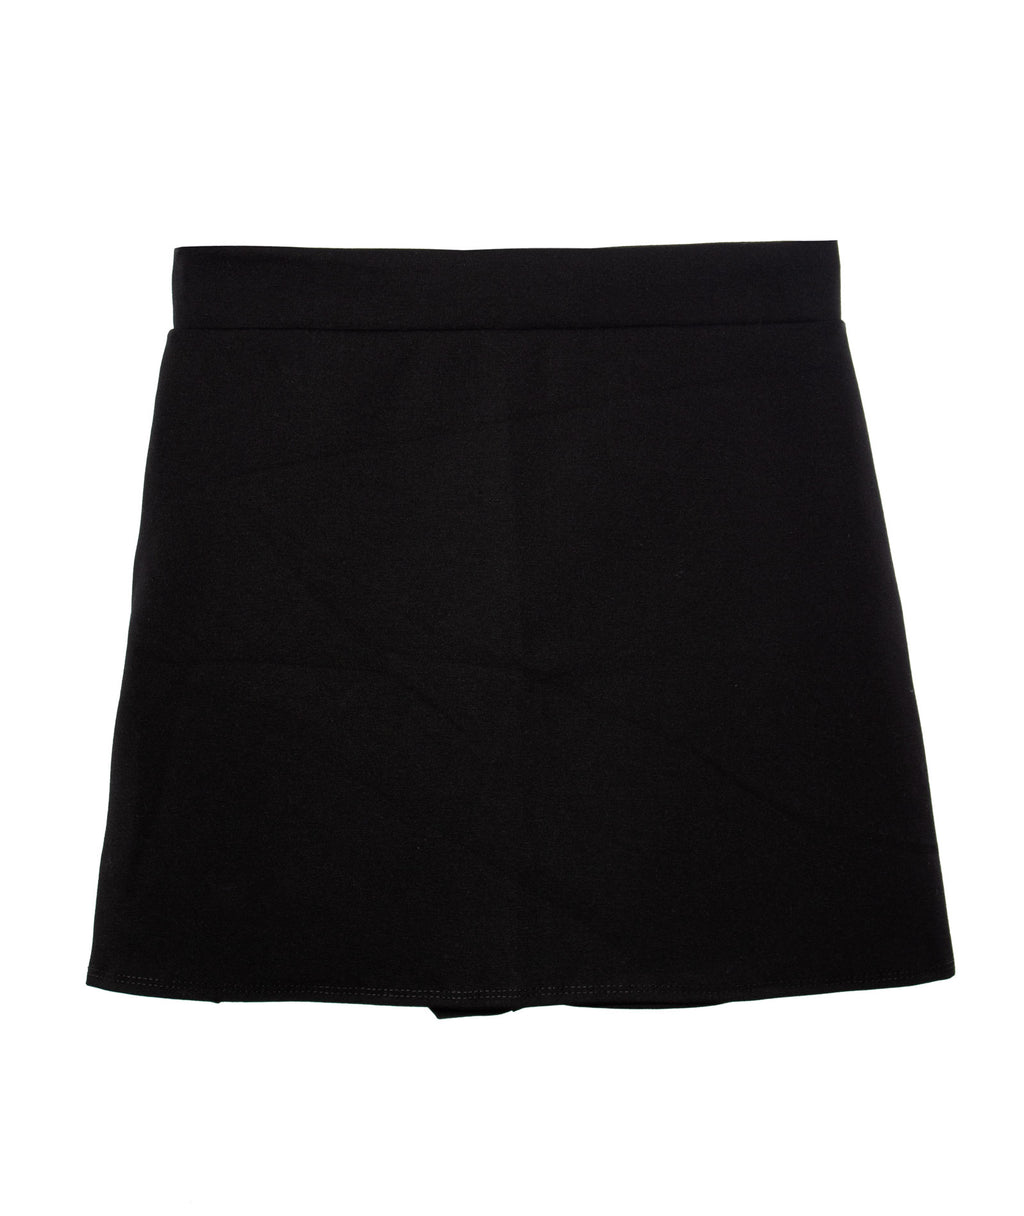 Cheryl Creations Girls Black Envelope Skirt